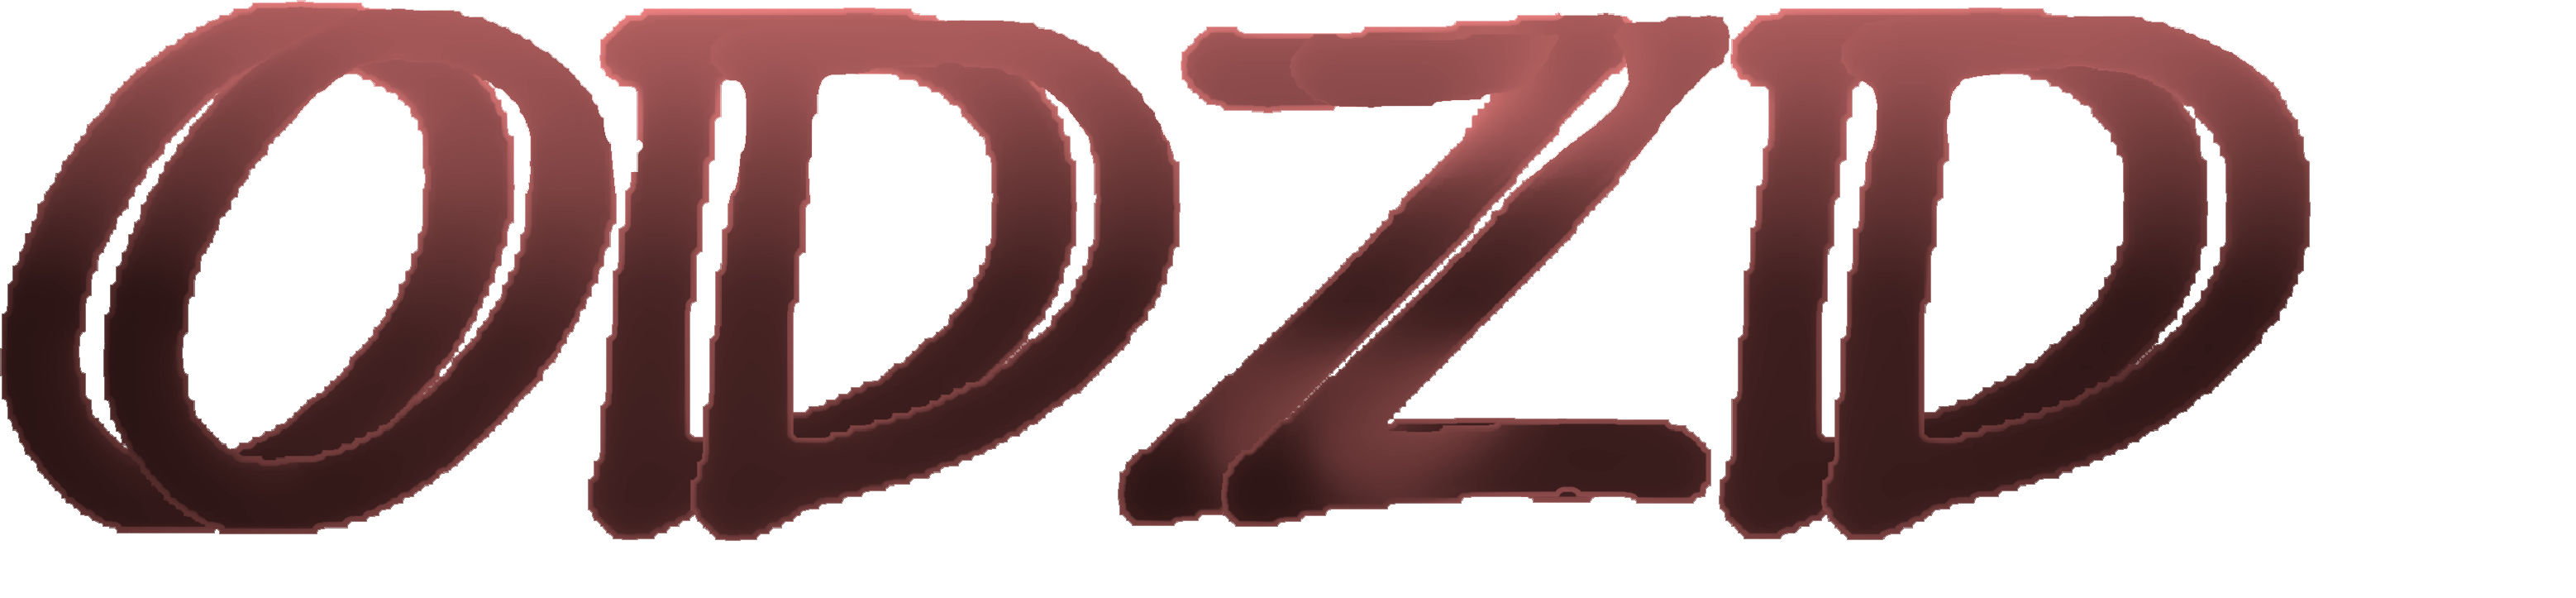 Odezza Design Signature